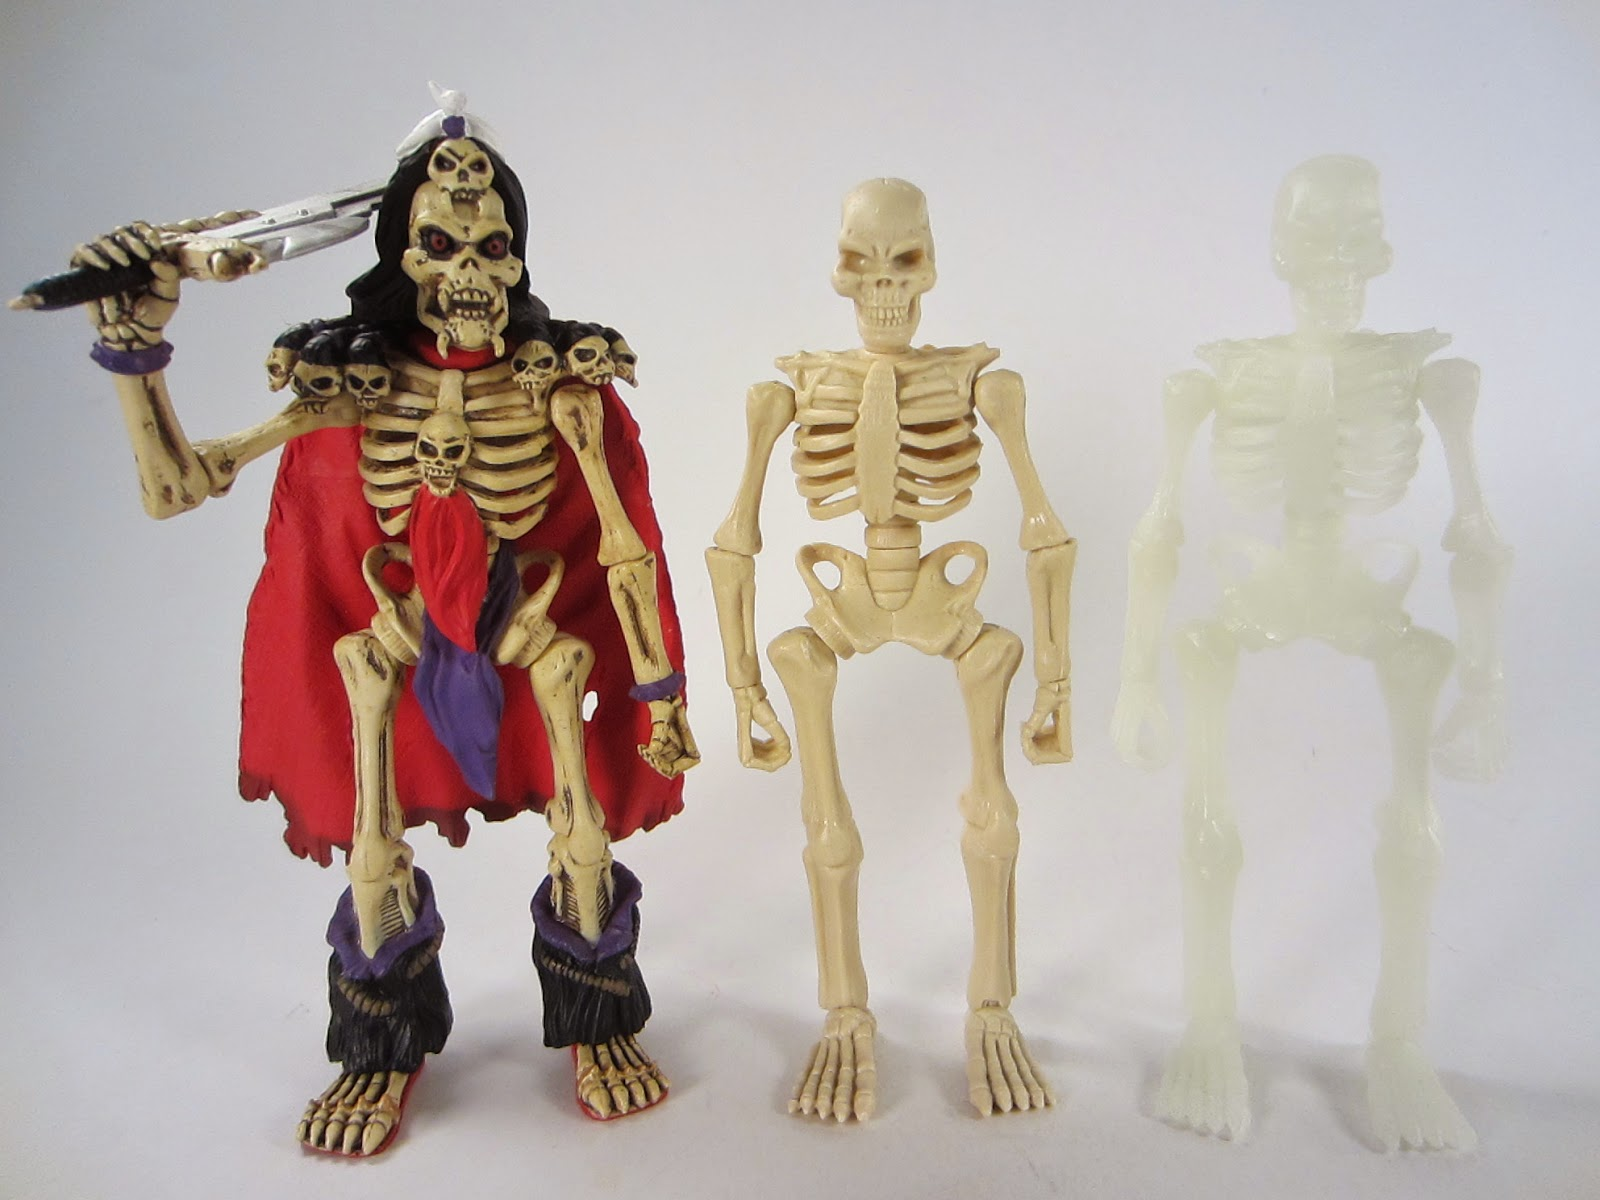 http://octobertoys.com/baron-dark-titan-skeletons/